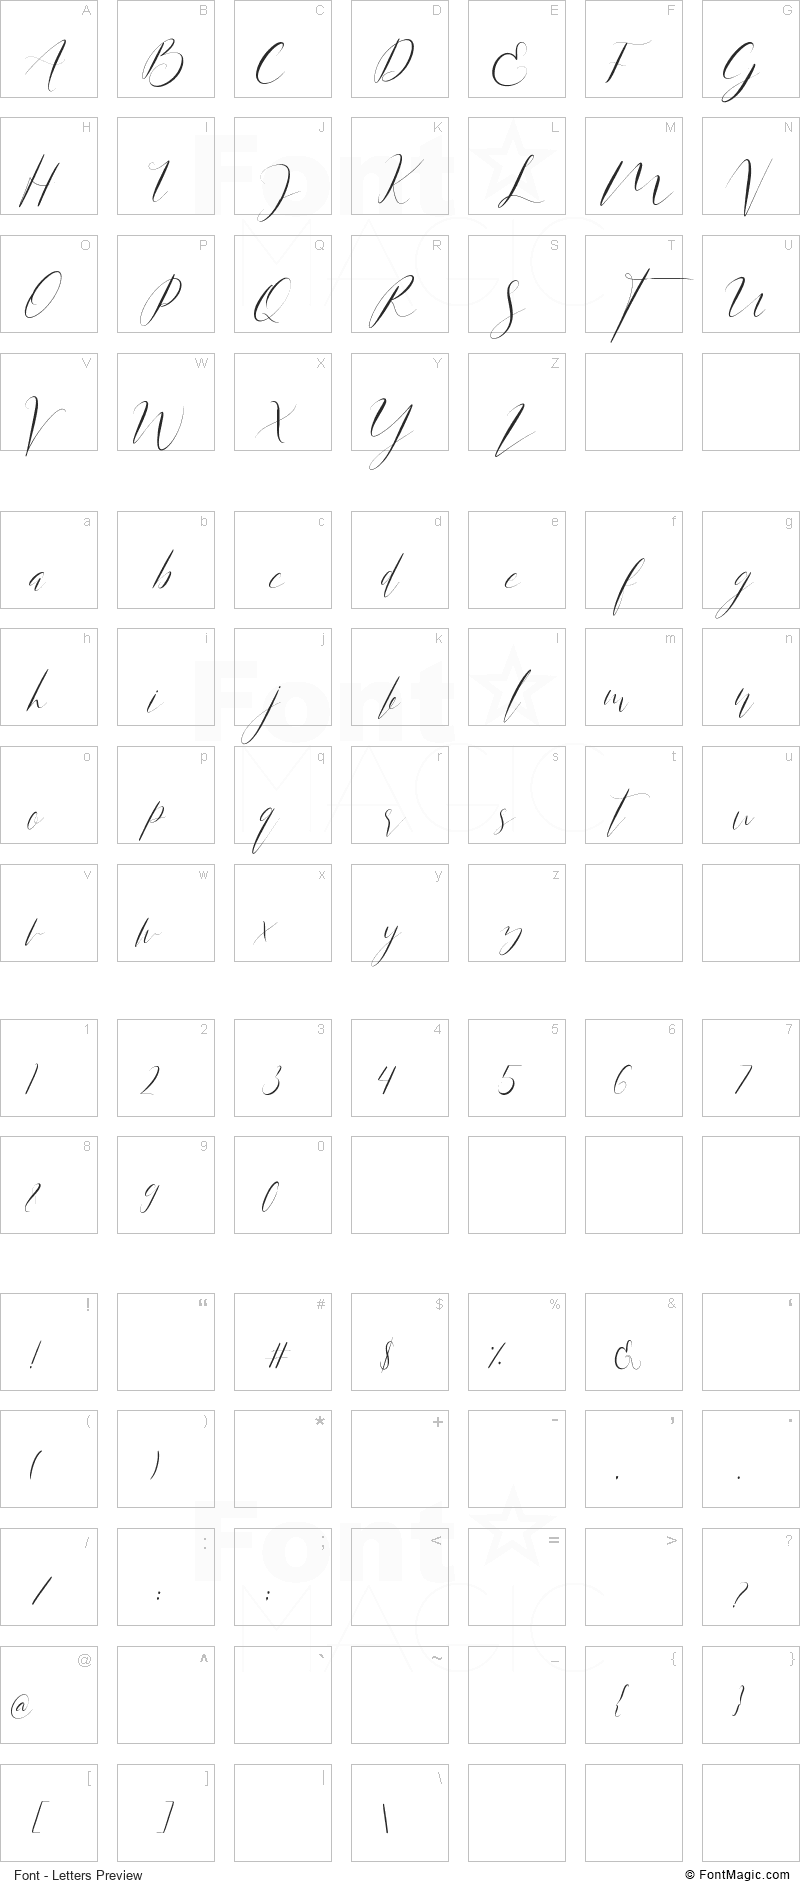 Anita Jane Font - All Latters Preview Chart